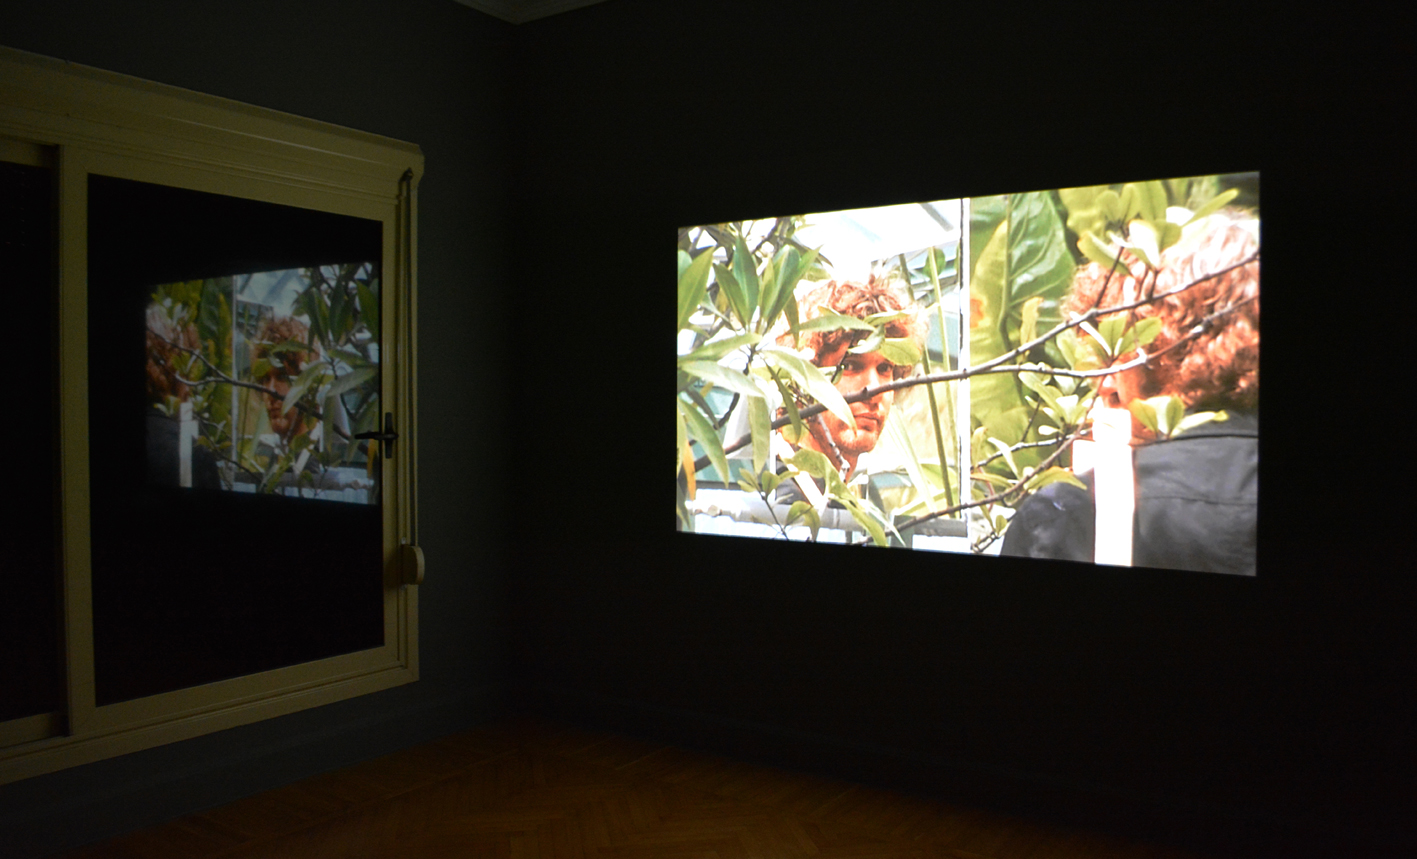 Installation shot. Time Laughs Back at You Like a Sunken Ship, 2012, Super 8 film transferred to HD video. 9 min. 31 sec.  WATCH HERE